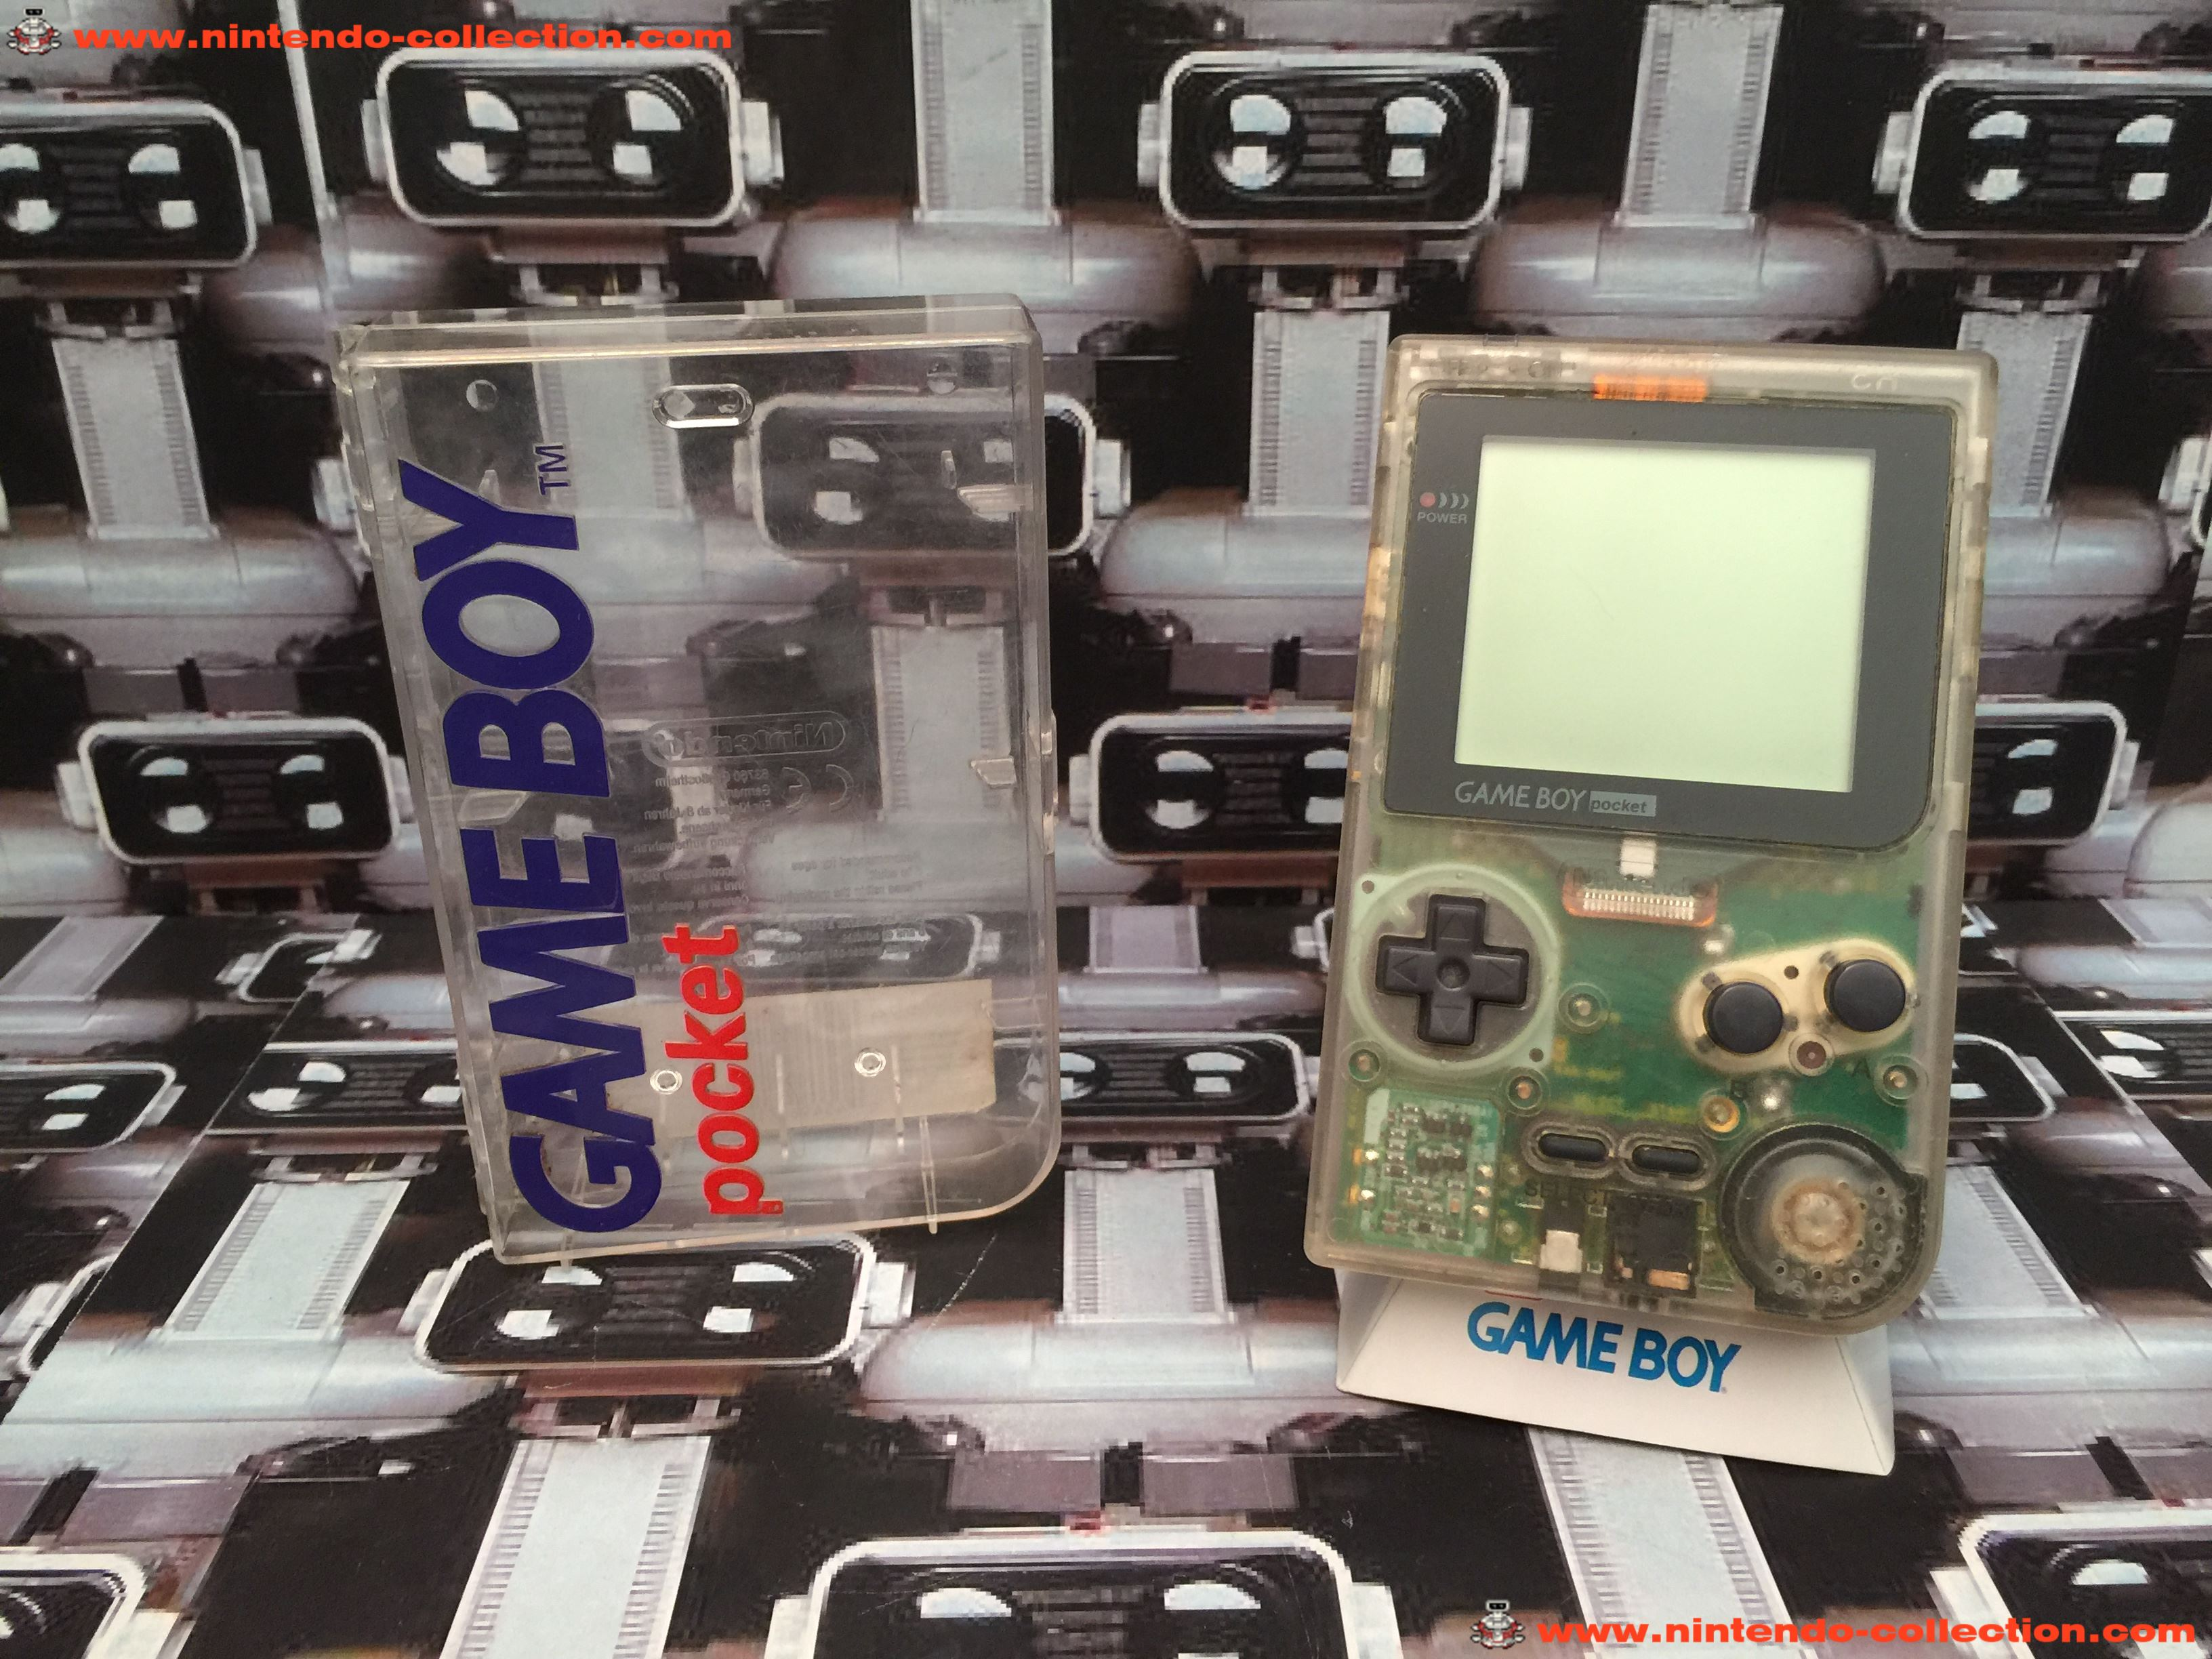 www.nintendo-collection.com - Gameboy Pocket GB Clear Transparente Crystal Box - 01